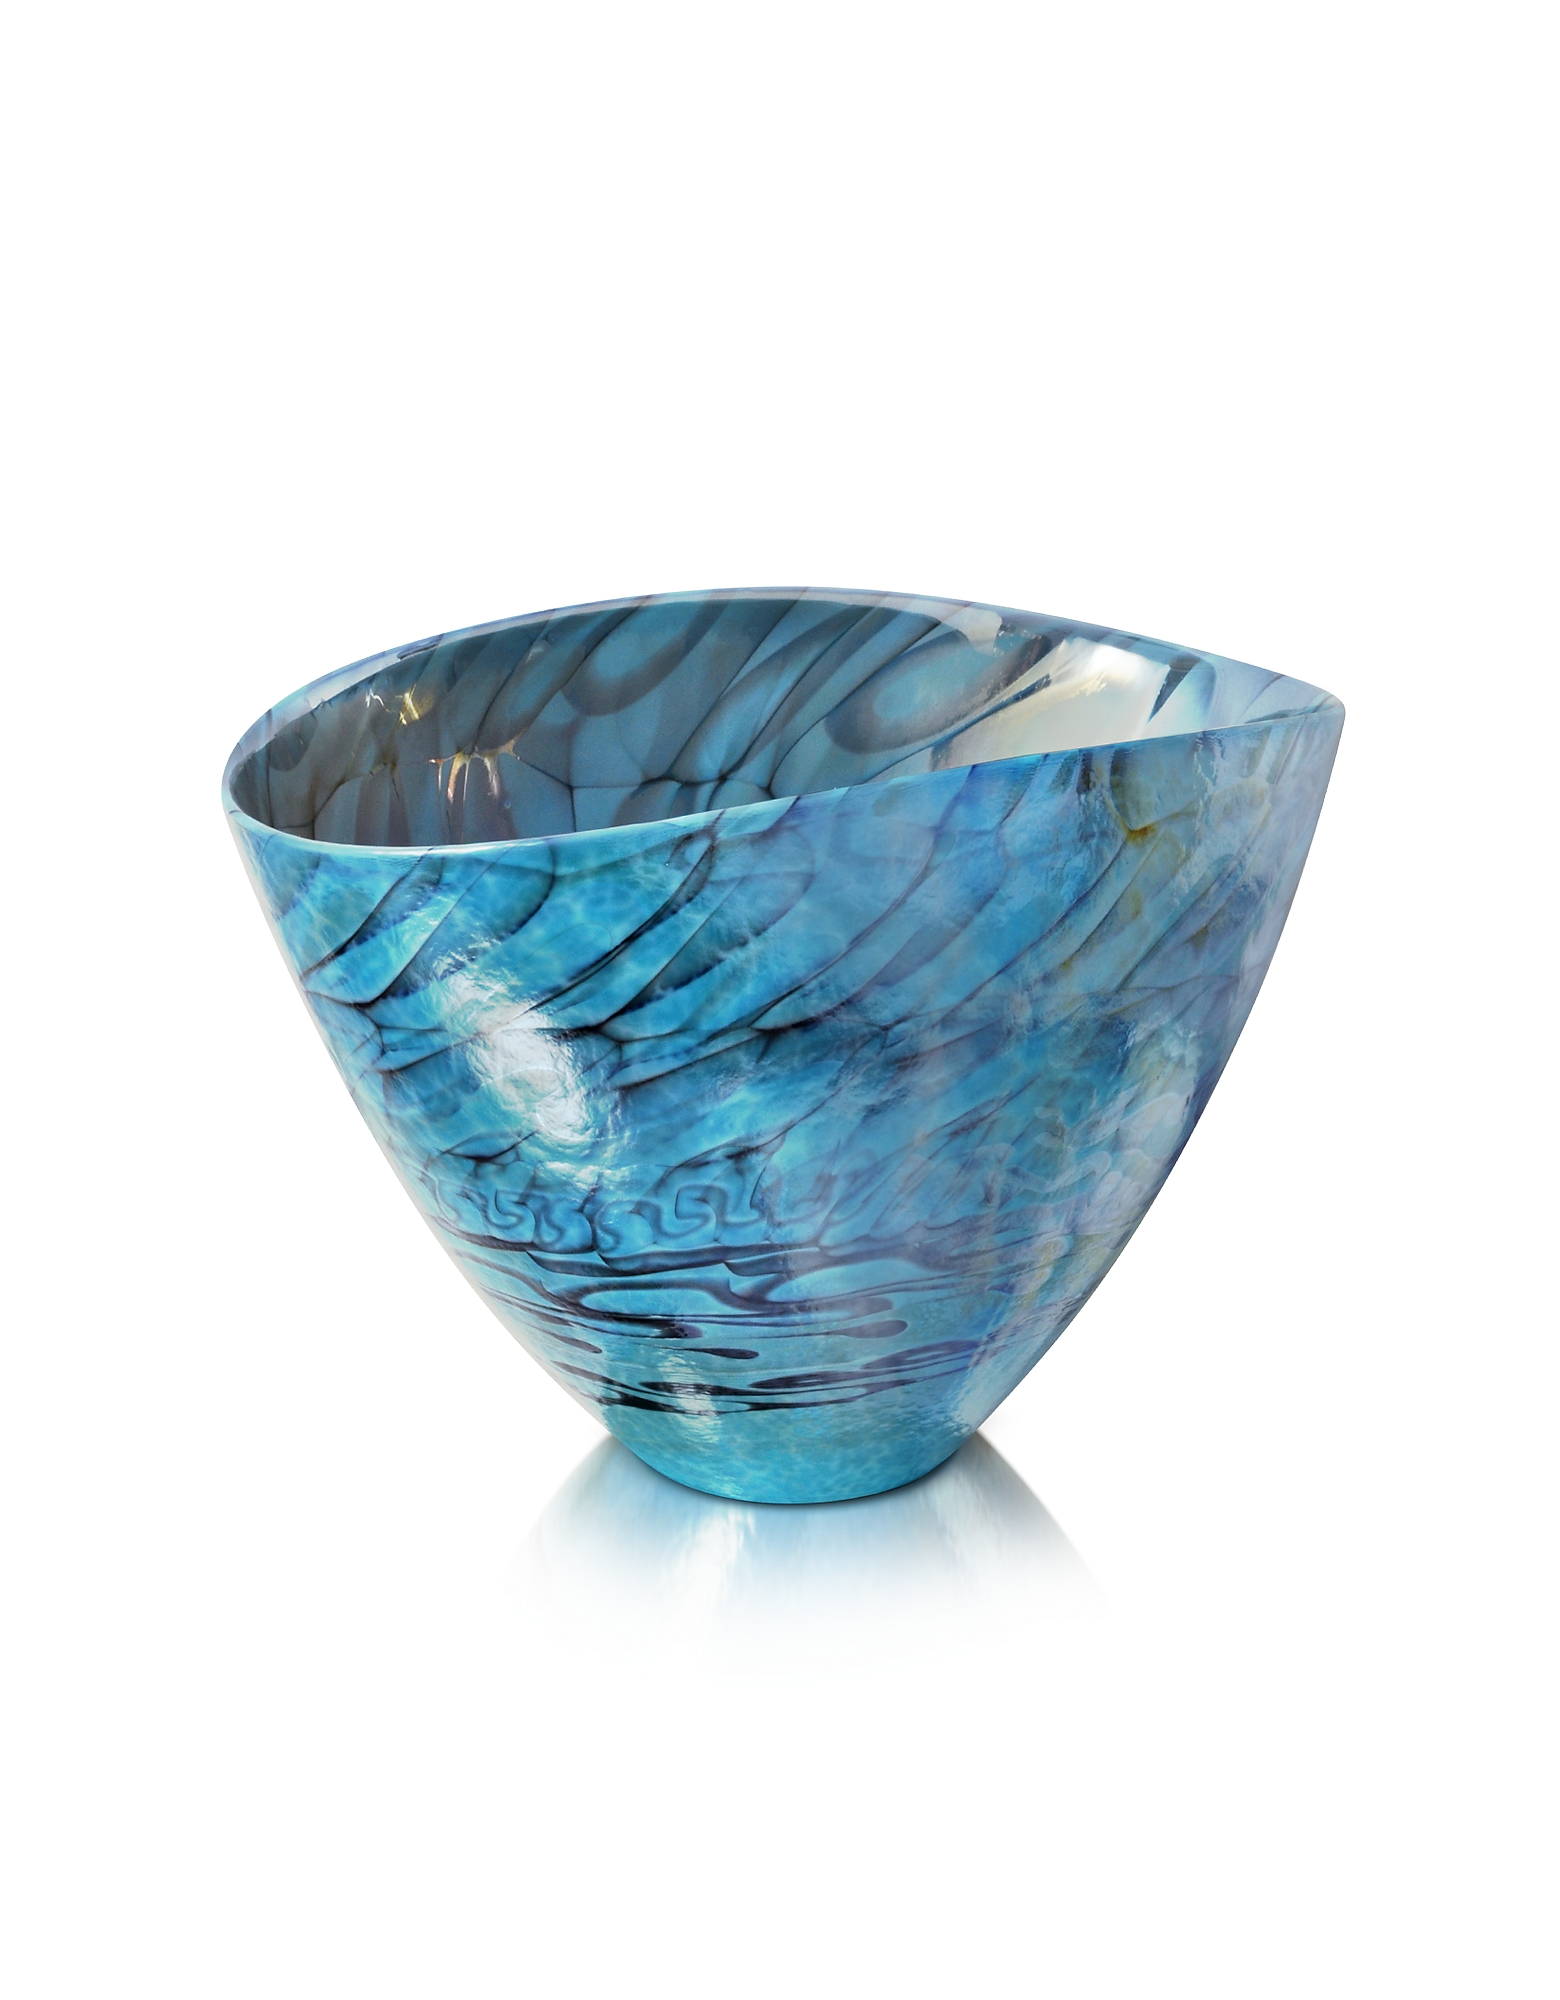 Yalos Murano Decor & Lighting, Belus - Turquoise Murano Glass Vase